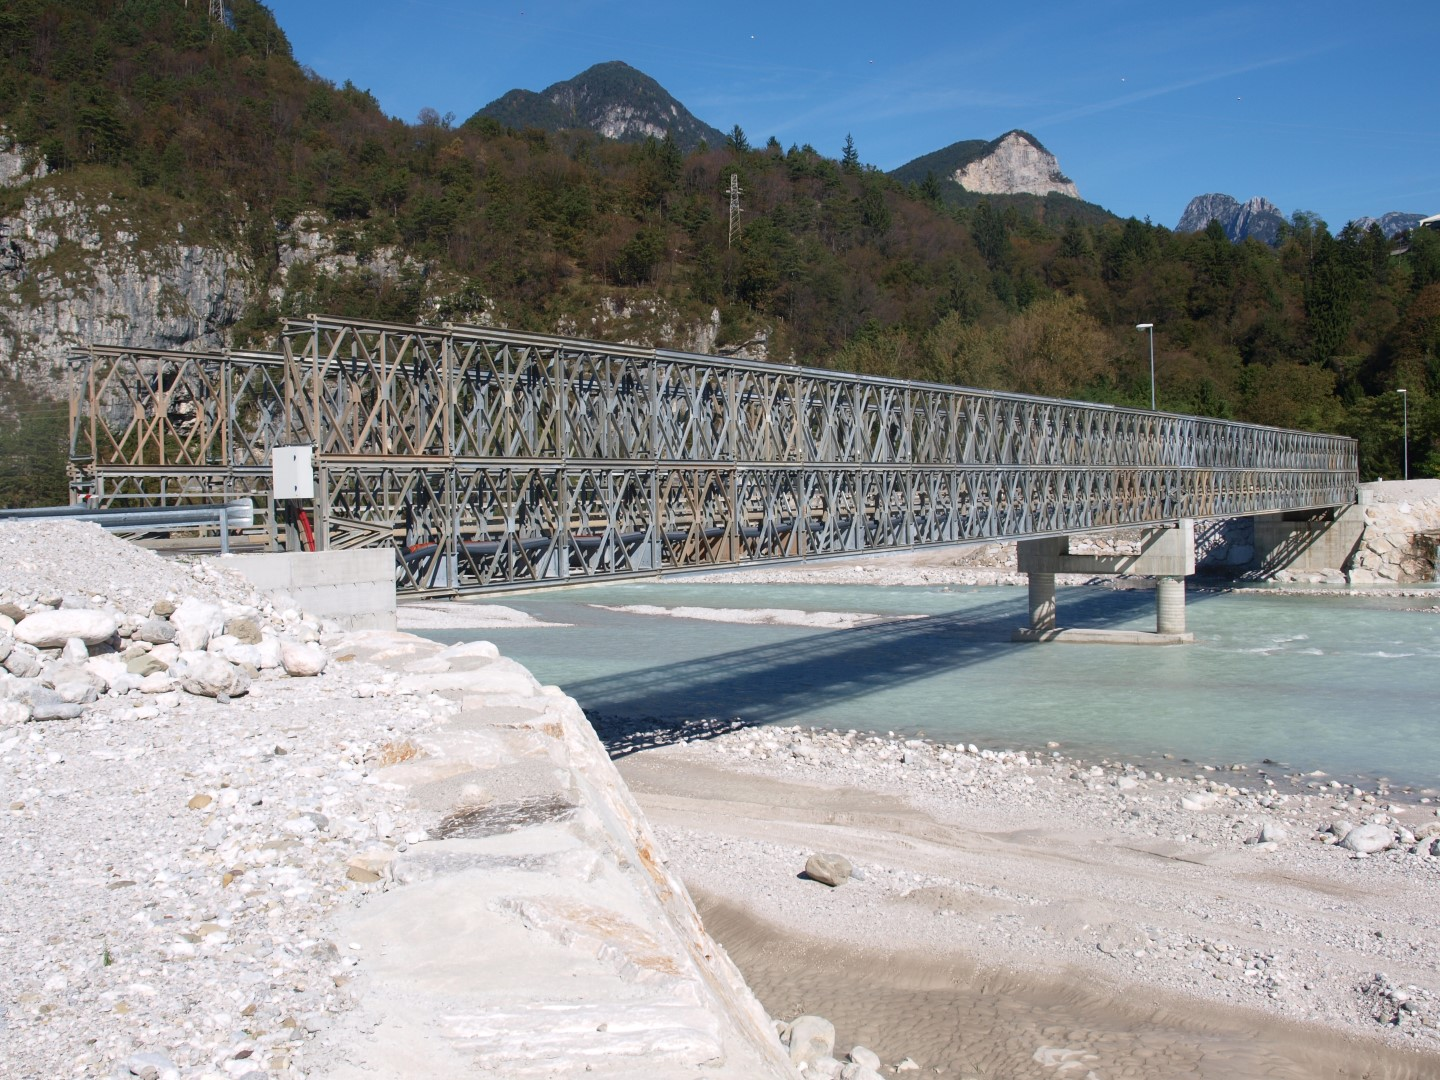 ponte bailey carrabile